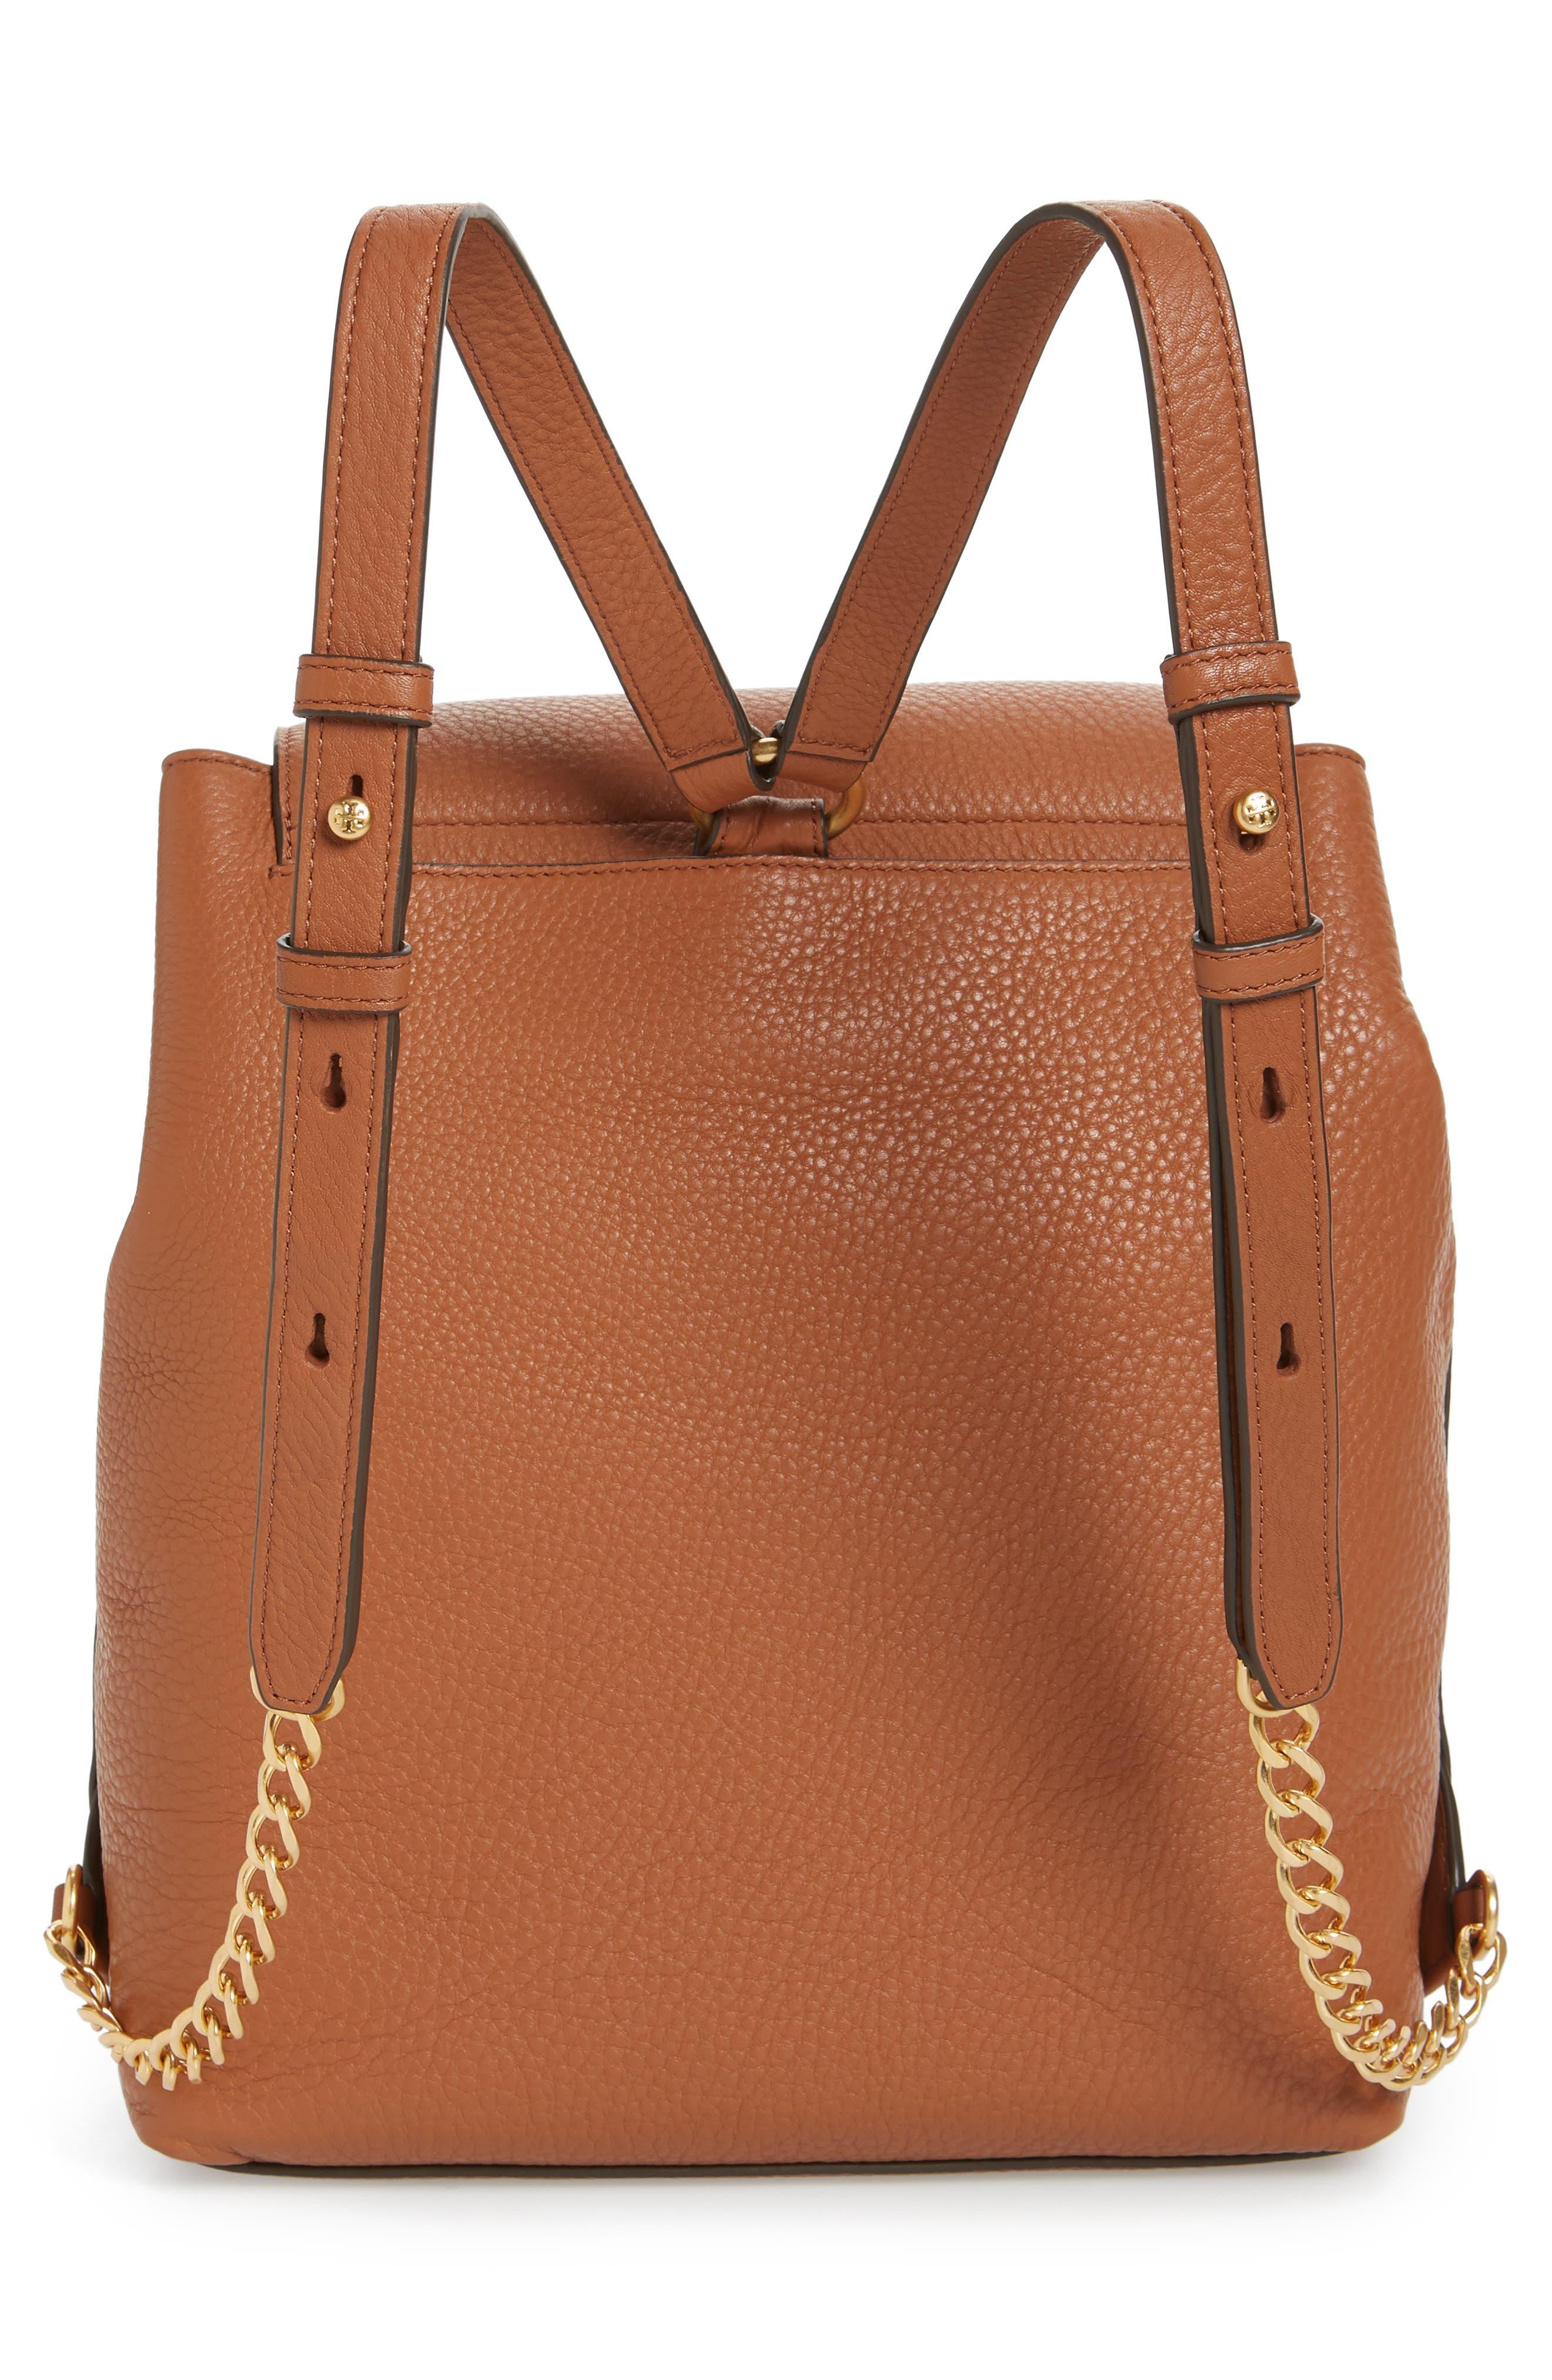 Chelsea Leather Backpack,                             Alternate thumbnail 3, color,                             Classic Tan